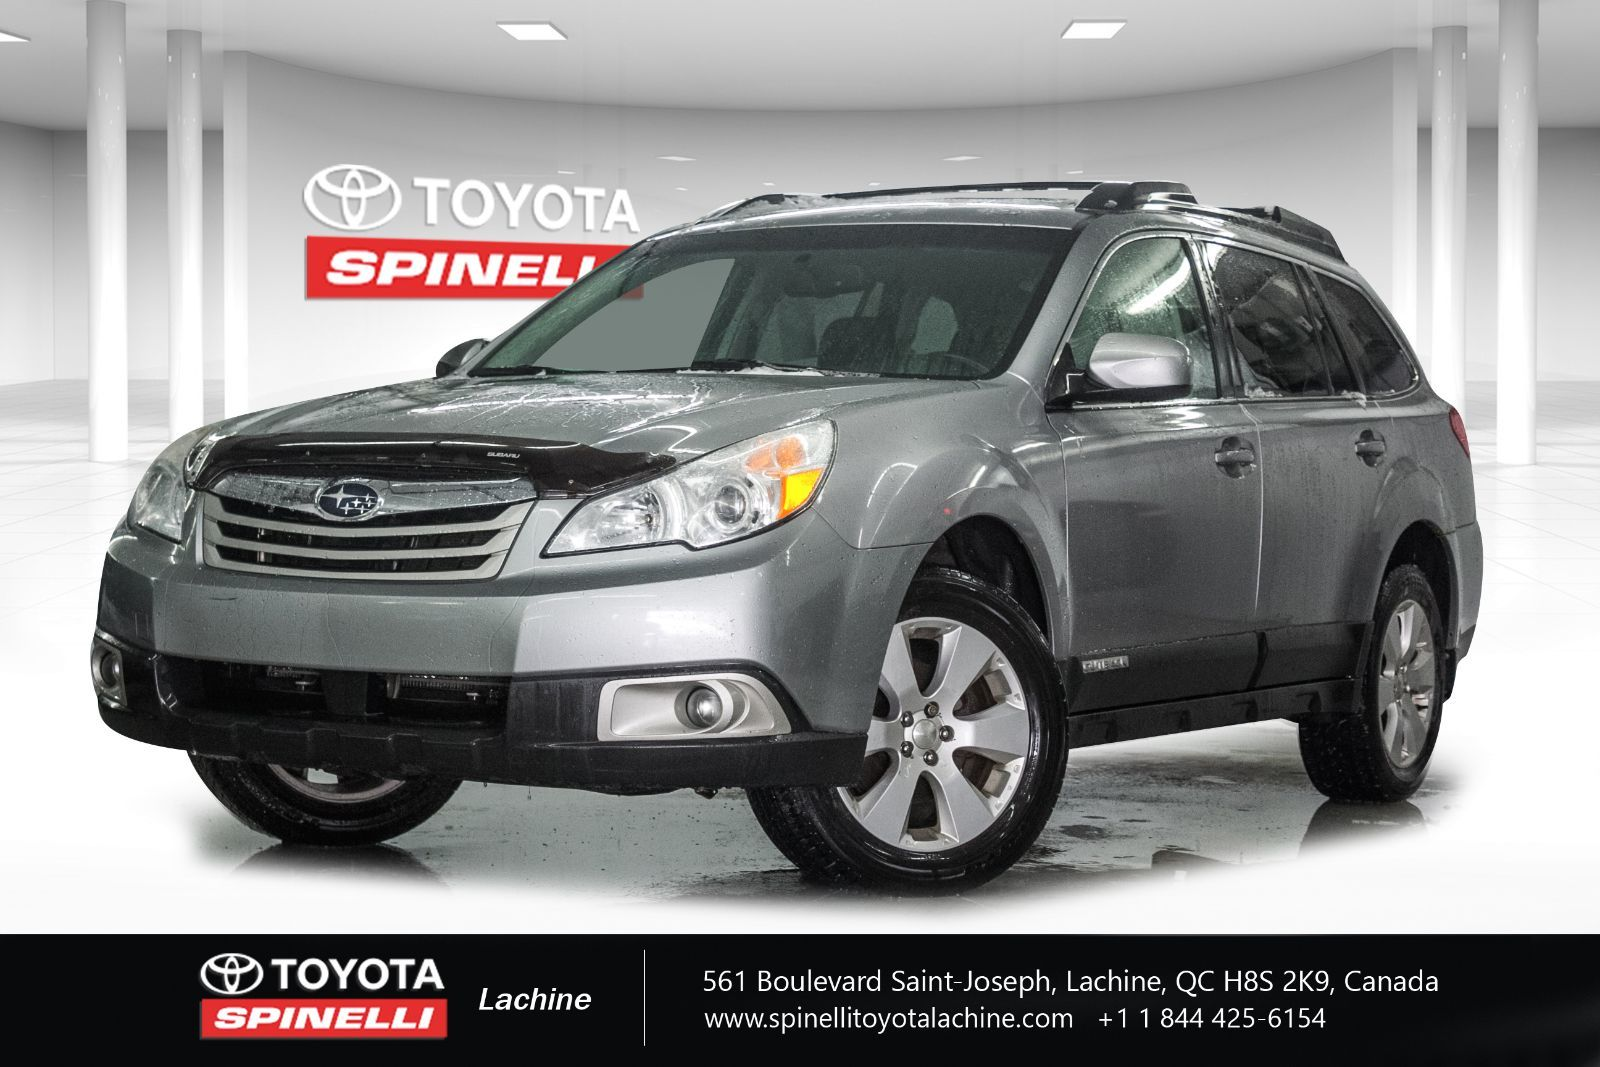 subaru outback awd et toit ouvrant 2010 d 39 occasion lachine inventaire d 39 occasion spinelli. Black Bedroom Furniture Sets. Home Design Ideas